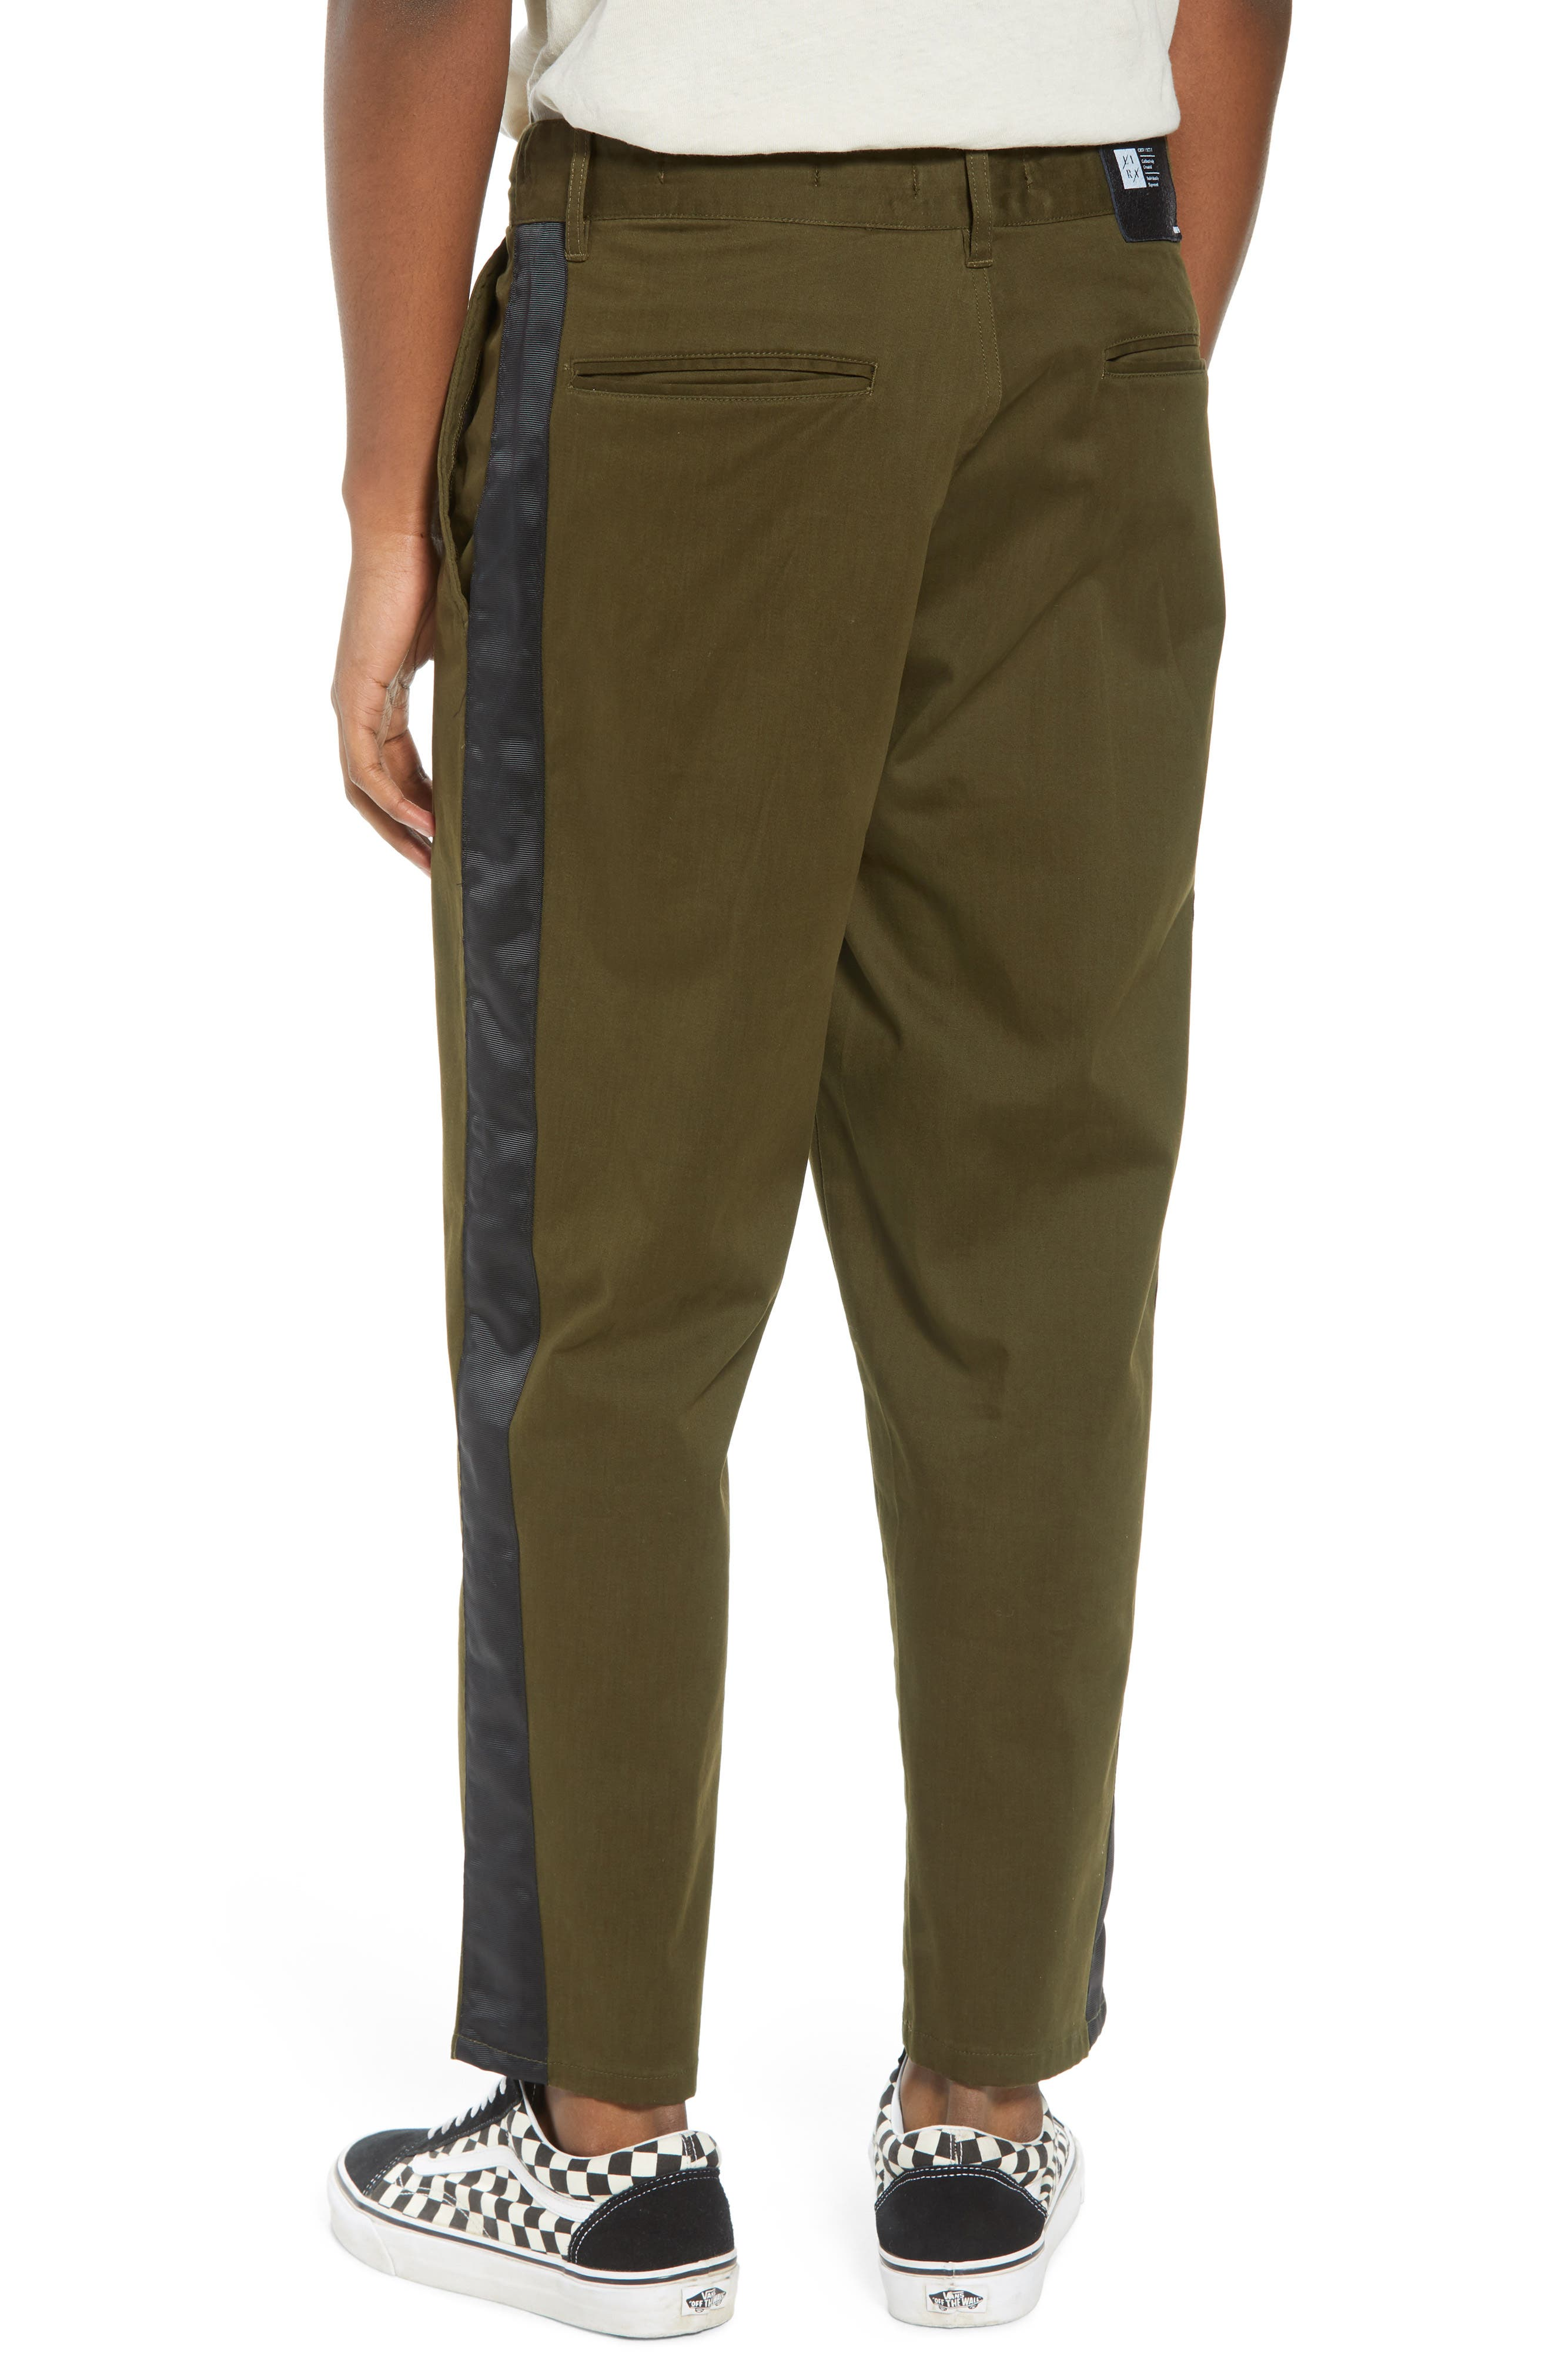 Lincoln Relaxed Fit Pants,                             Alternate thumbnail 2, color,                             300